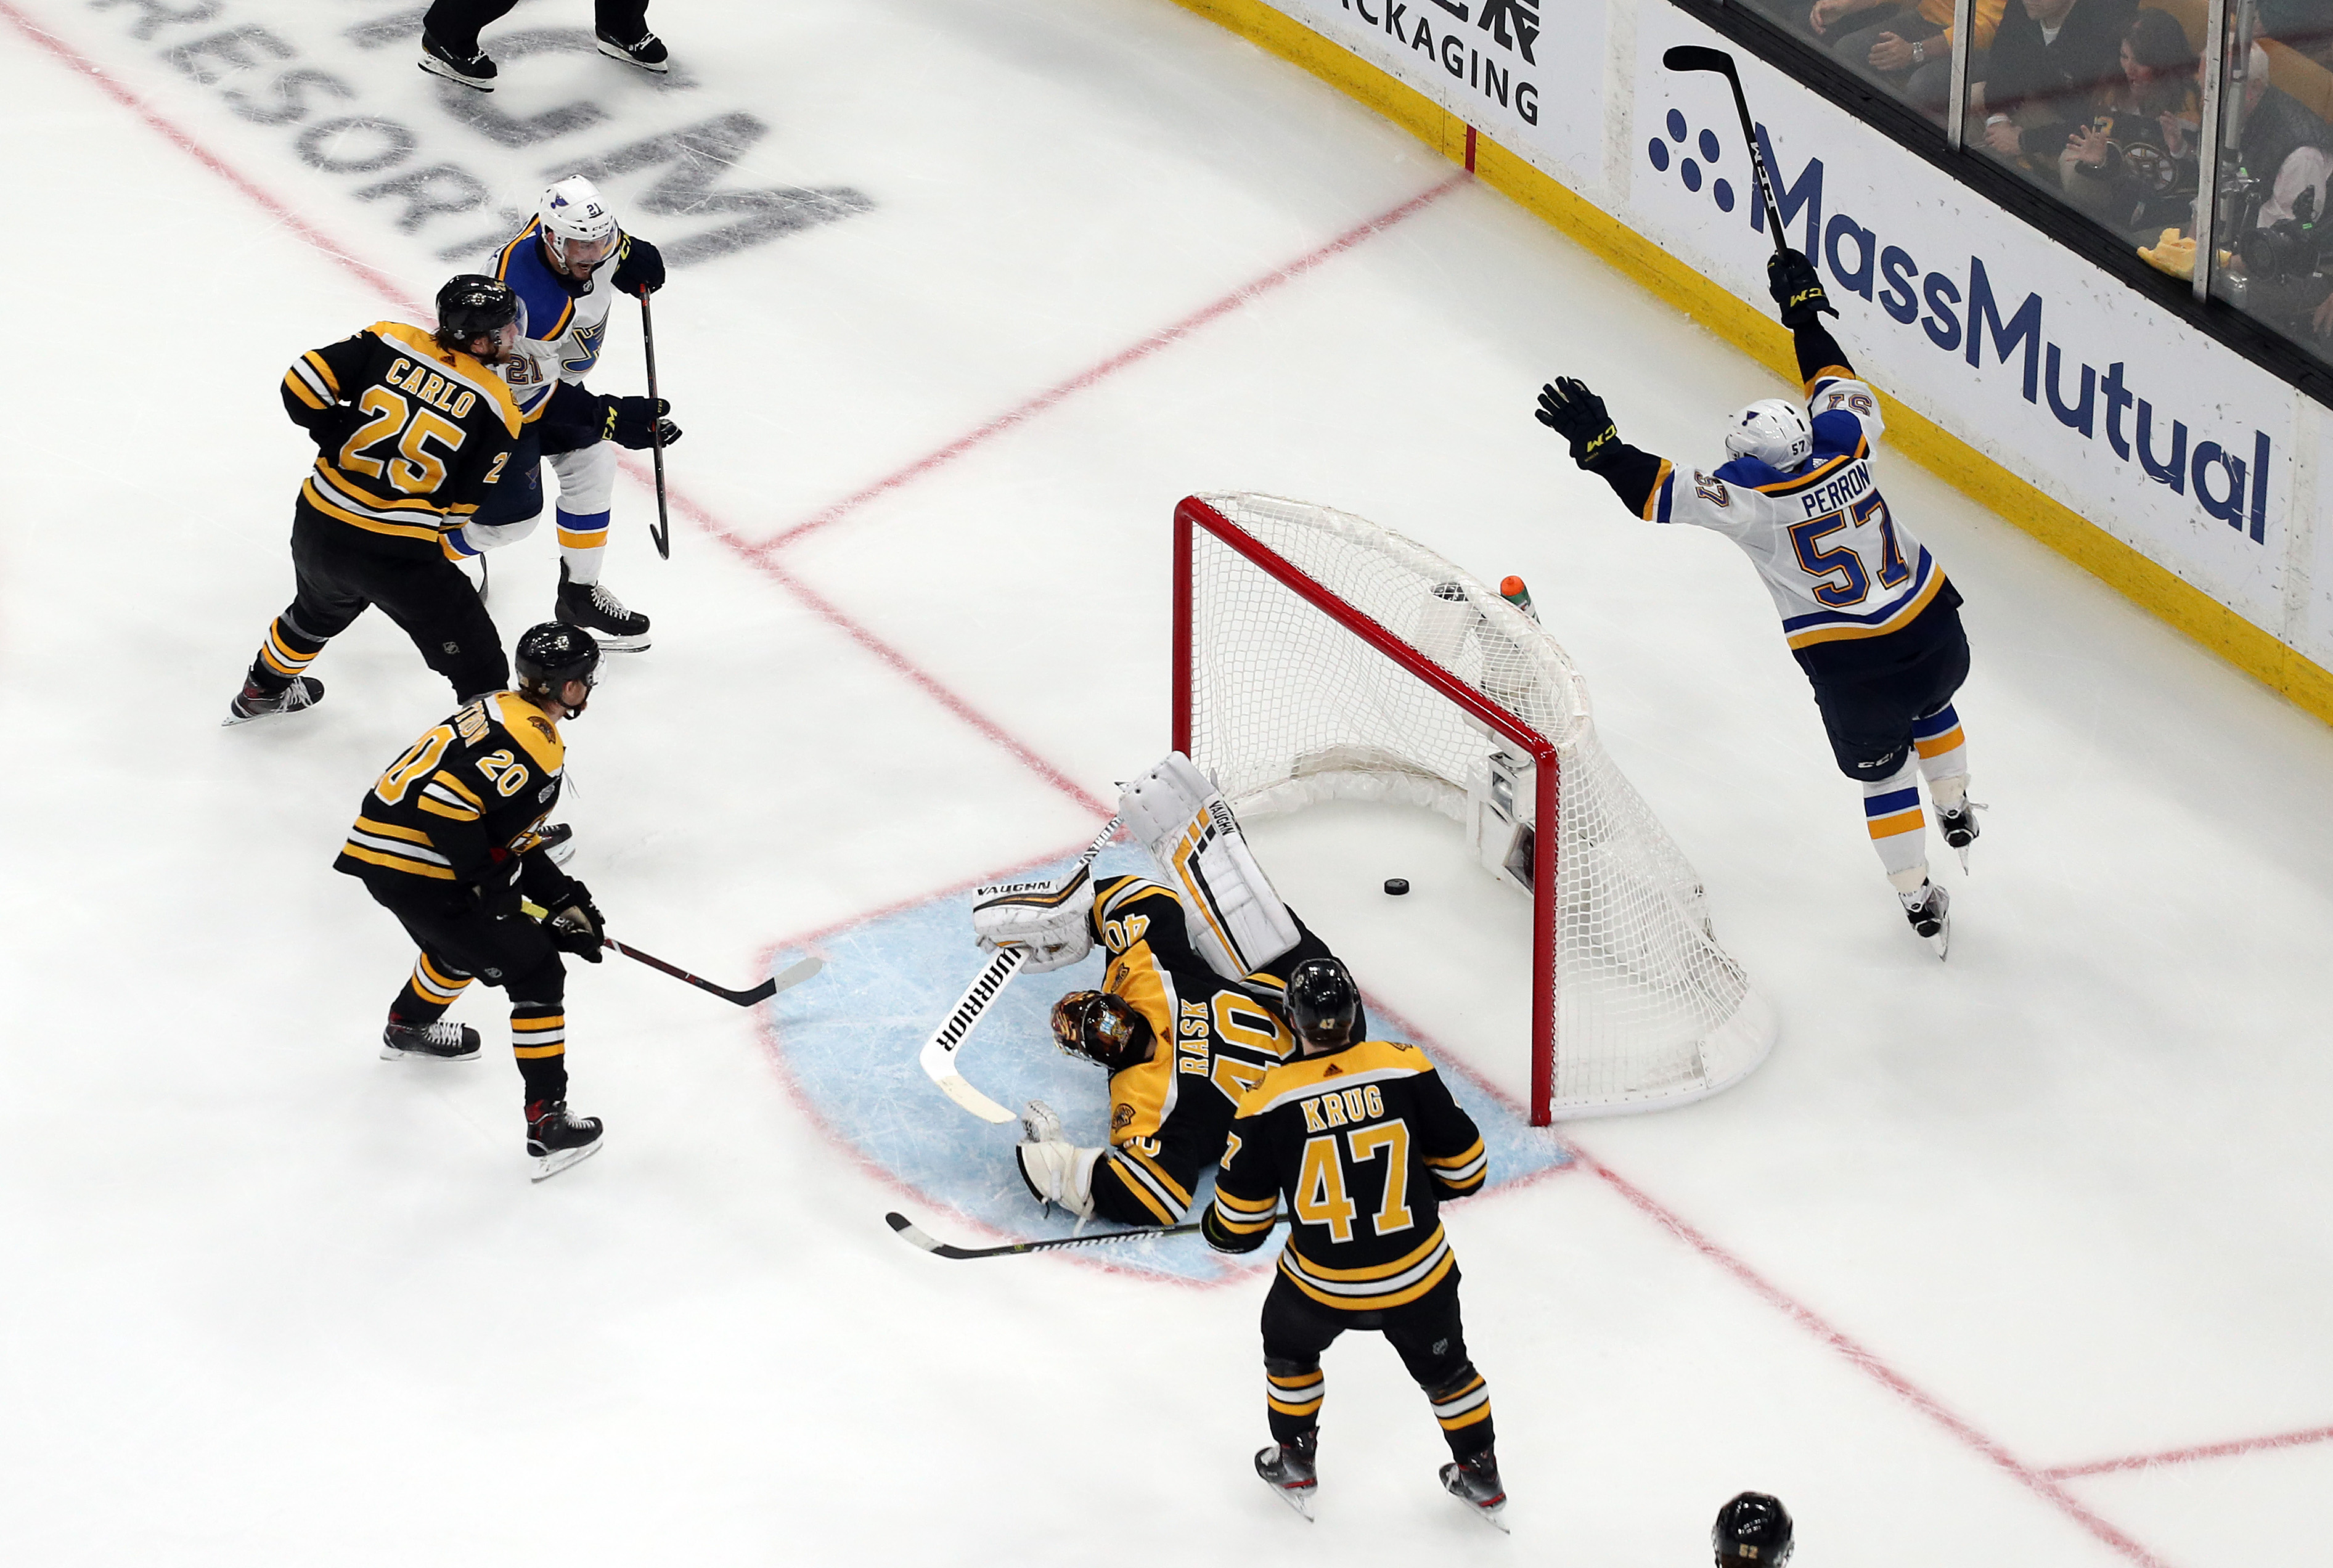 David Perron #57 of the St. Louis Blues scores a third period goal past Tuukka Rask #40 of the Boston Bruins in Game Five of the 2019 NHL Stanley Cup Final at TD Garden on June 06, 2019 in Boston, Massachusetts. (Photo by Patrick Smith/Getty Images)